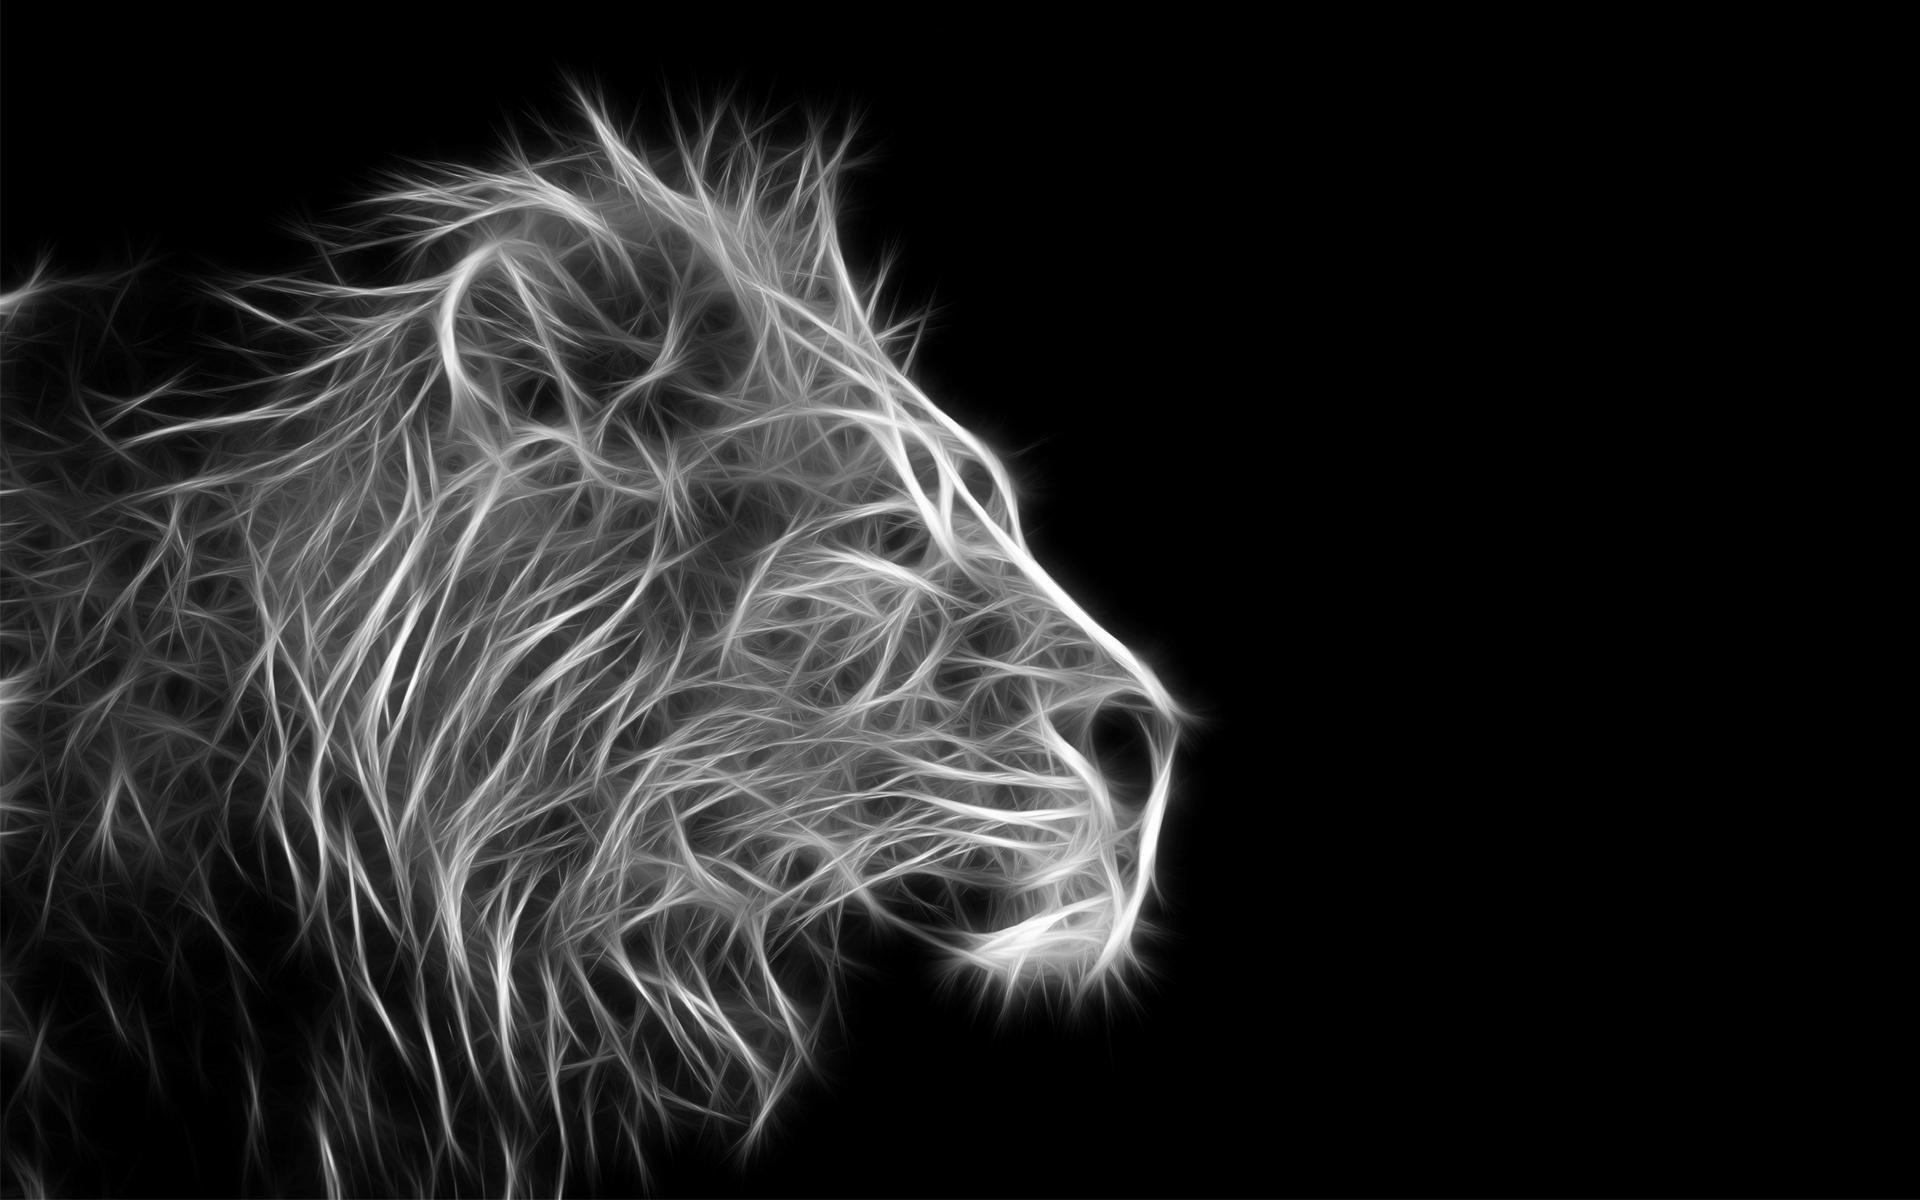 Lion Black And White Backgrounds For Desktop Wallpapers « Long